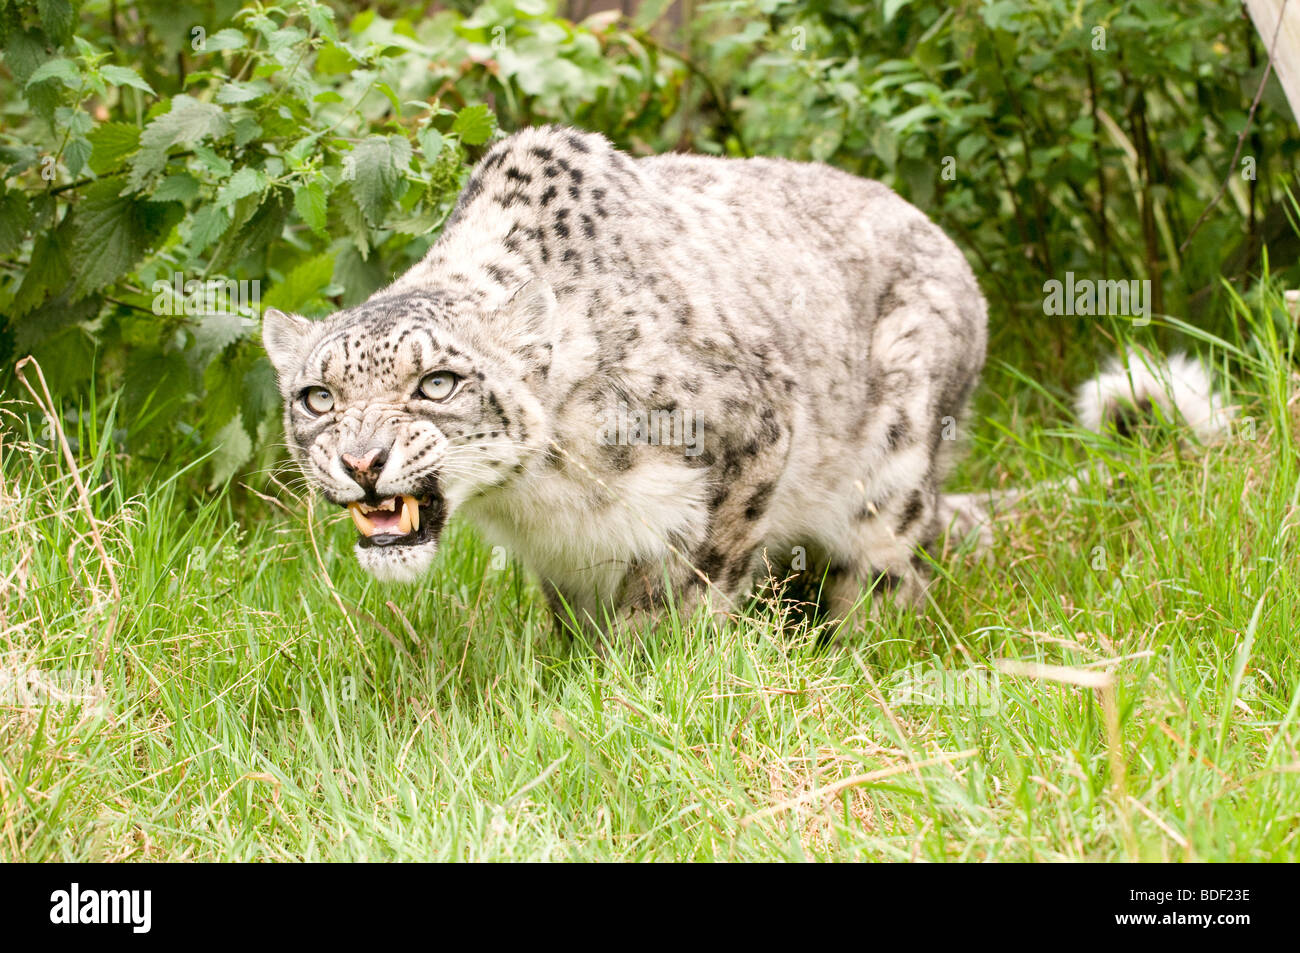 Snow Leopard in captivity at the Santago rare leopard breeding centre in England. - Stock Image